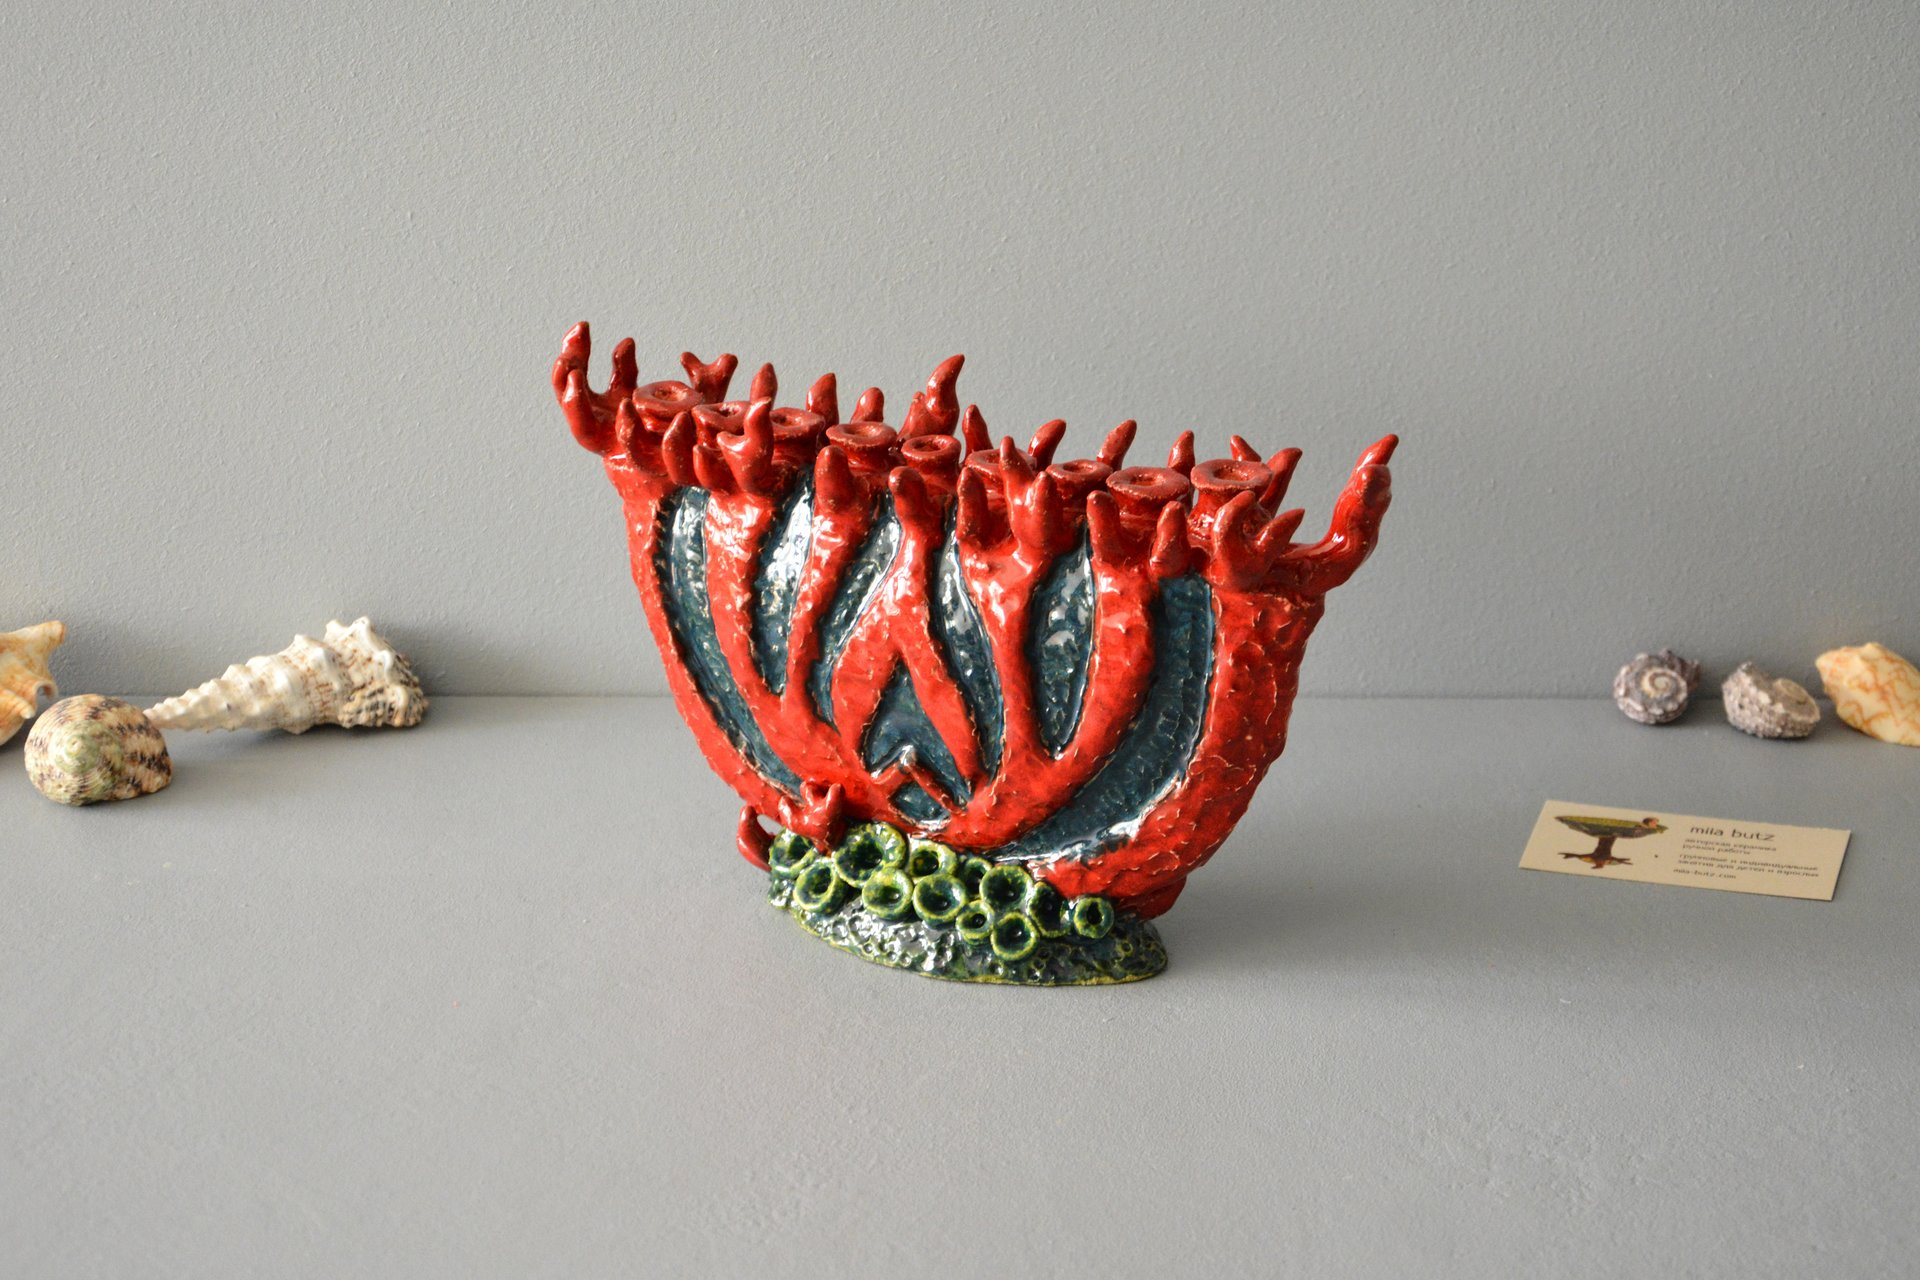 The Jewish Candlestick Chanukiah Coral, 27 cm * 16.5 cm, photo 4 of 6.